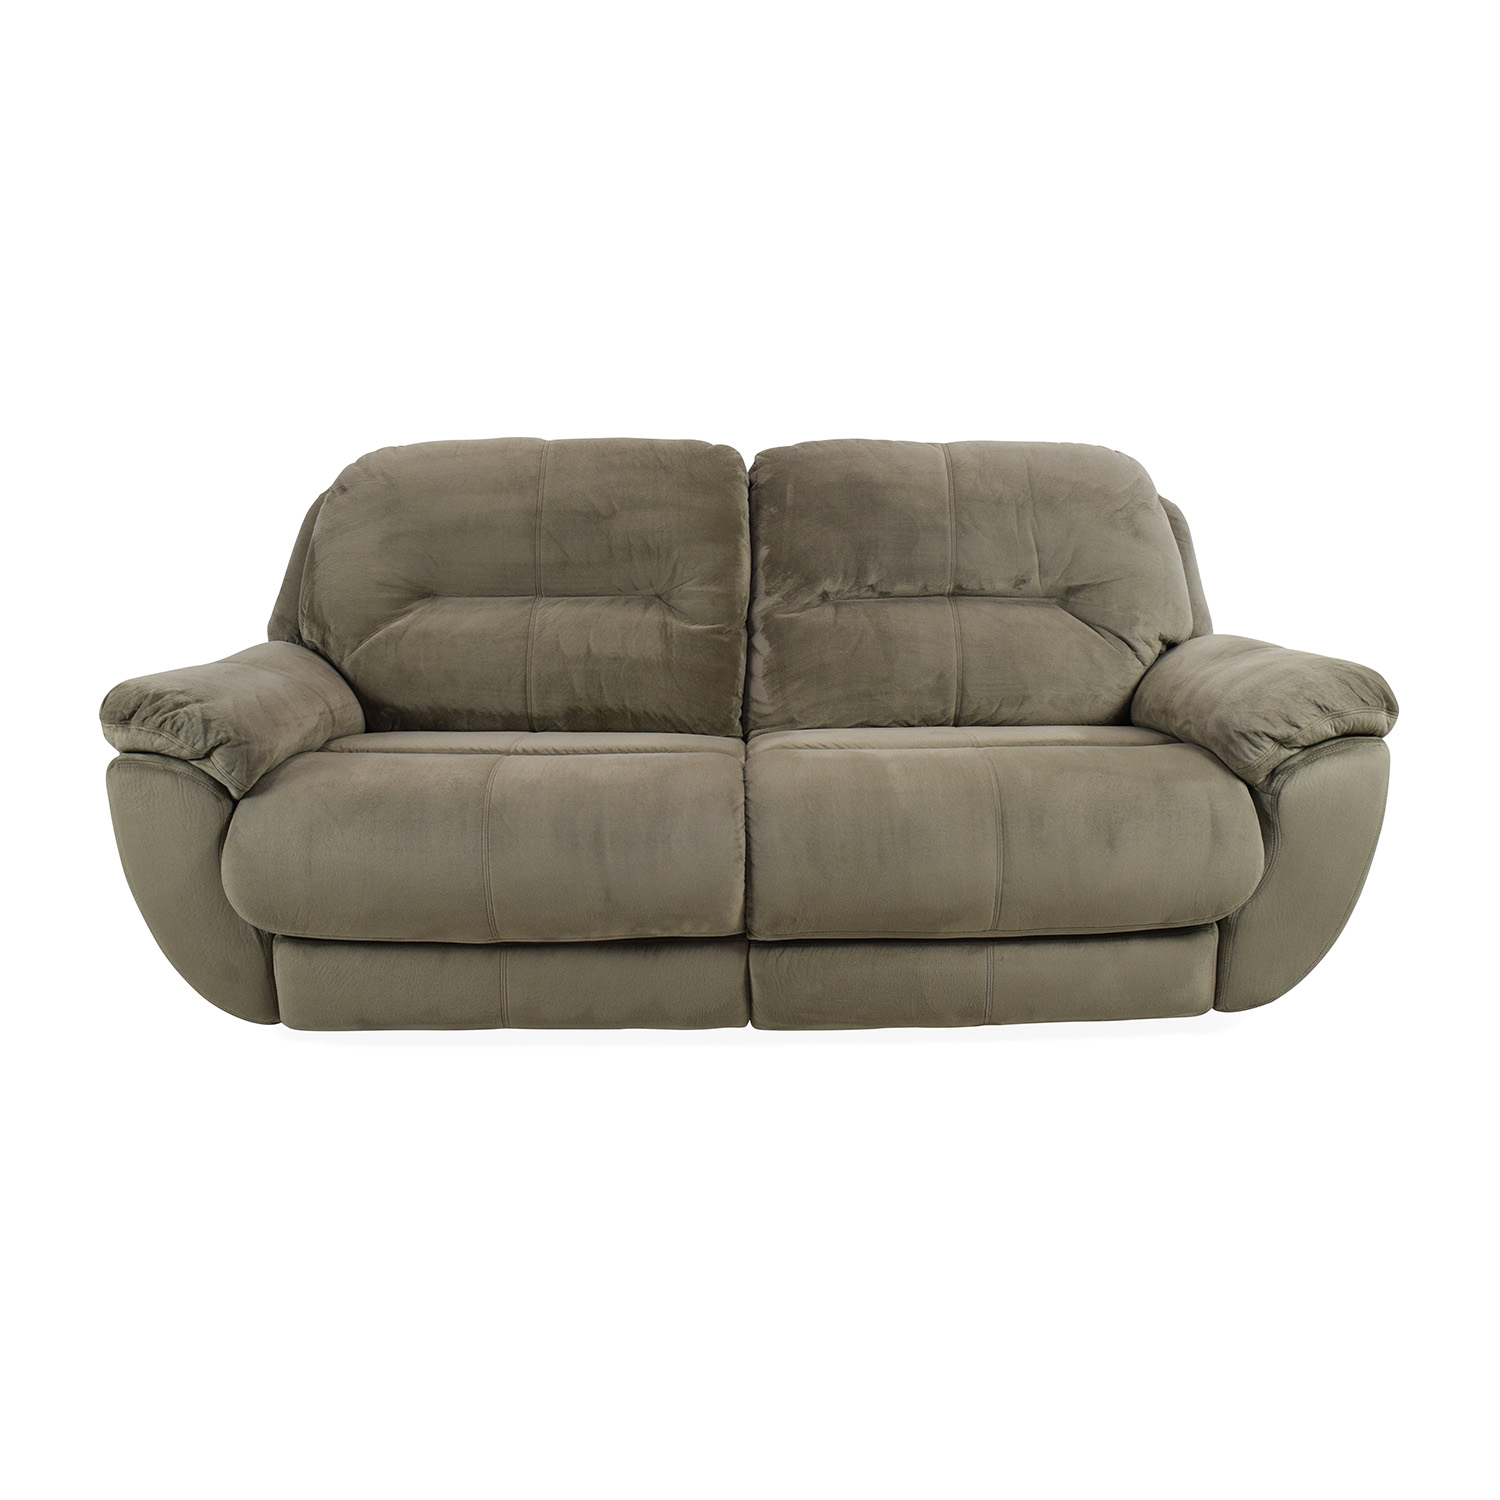 buy Kathy Ireland Home Quinn Power-Reclining Sofa Kathy Ireland Home by Raymour and Flanigan Sofas